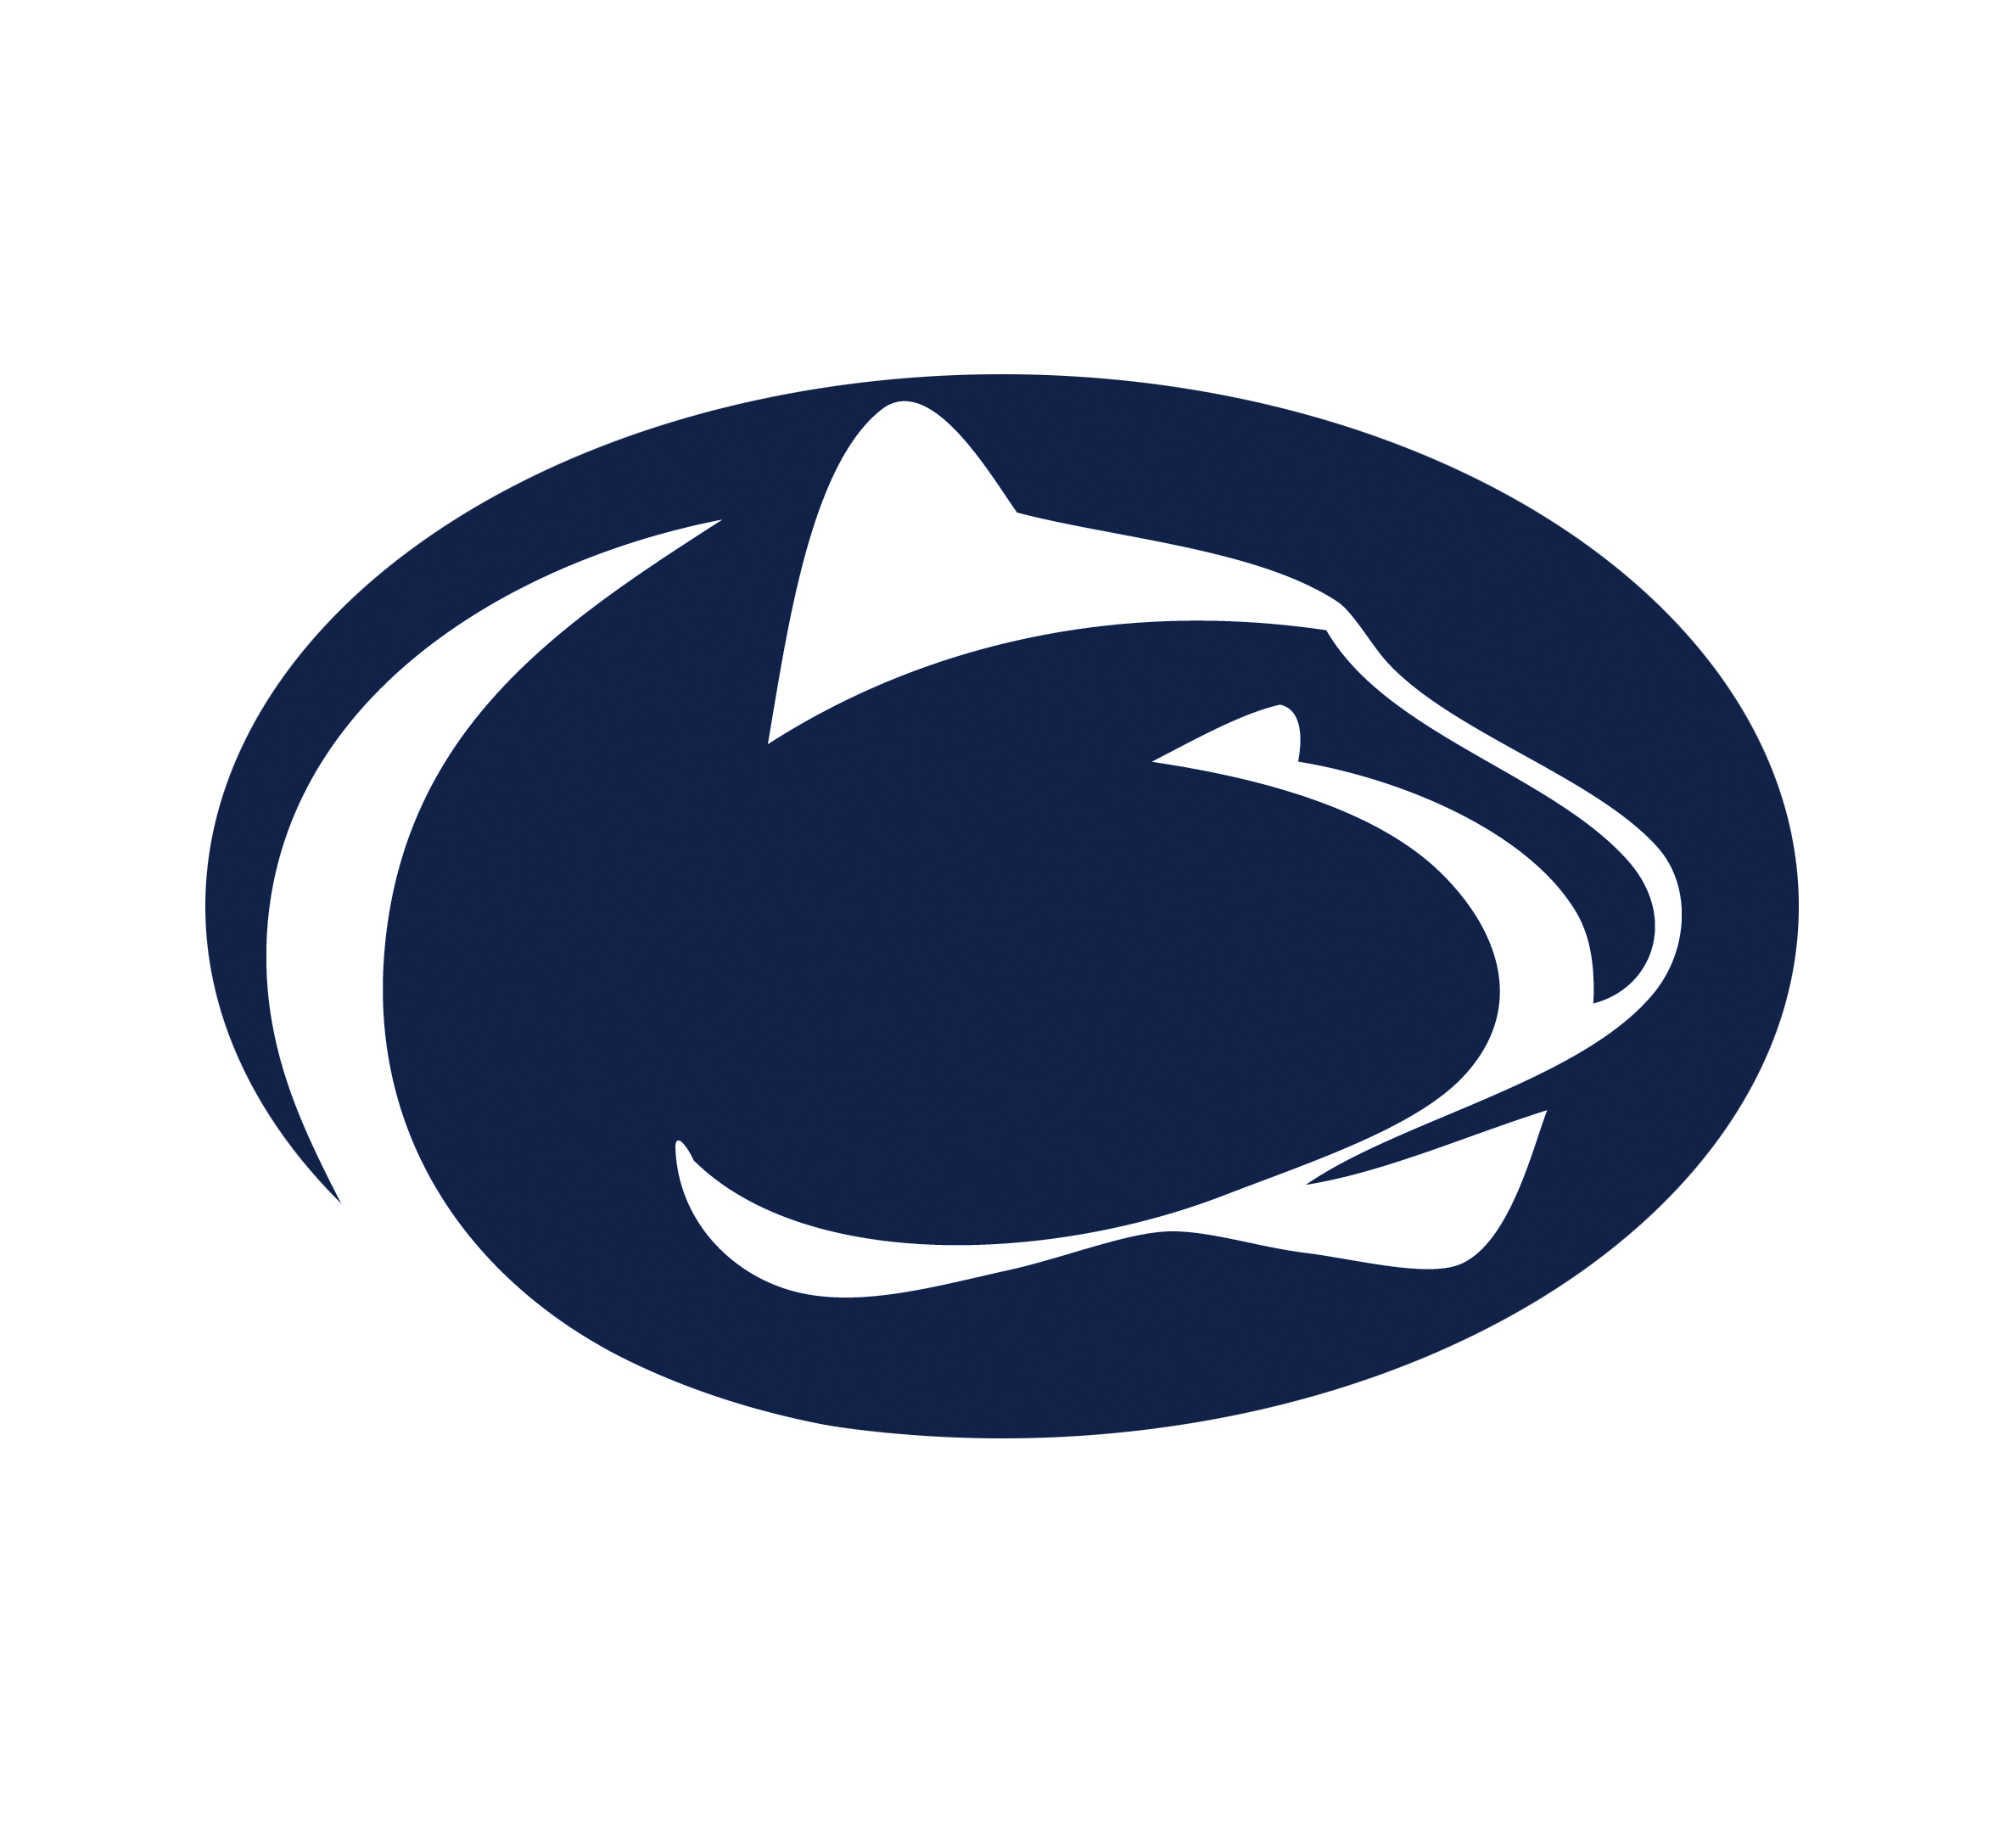 Penn State Nittany Lions College Football - Penn State ...